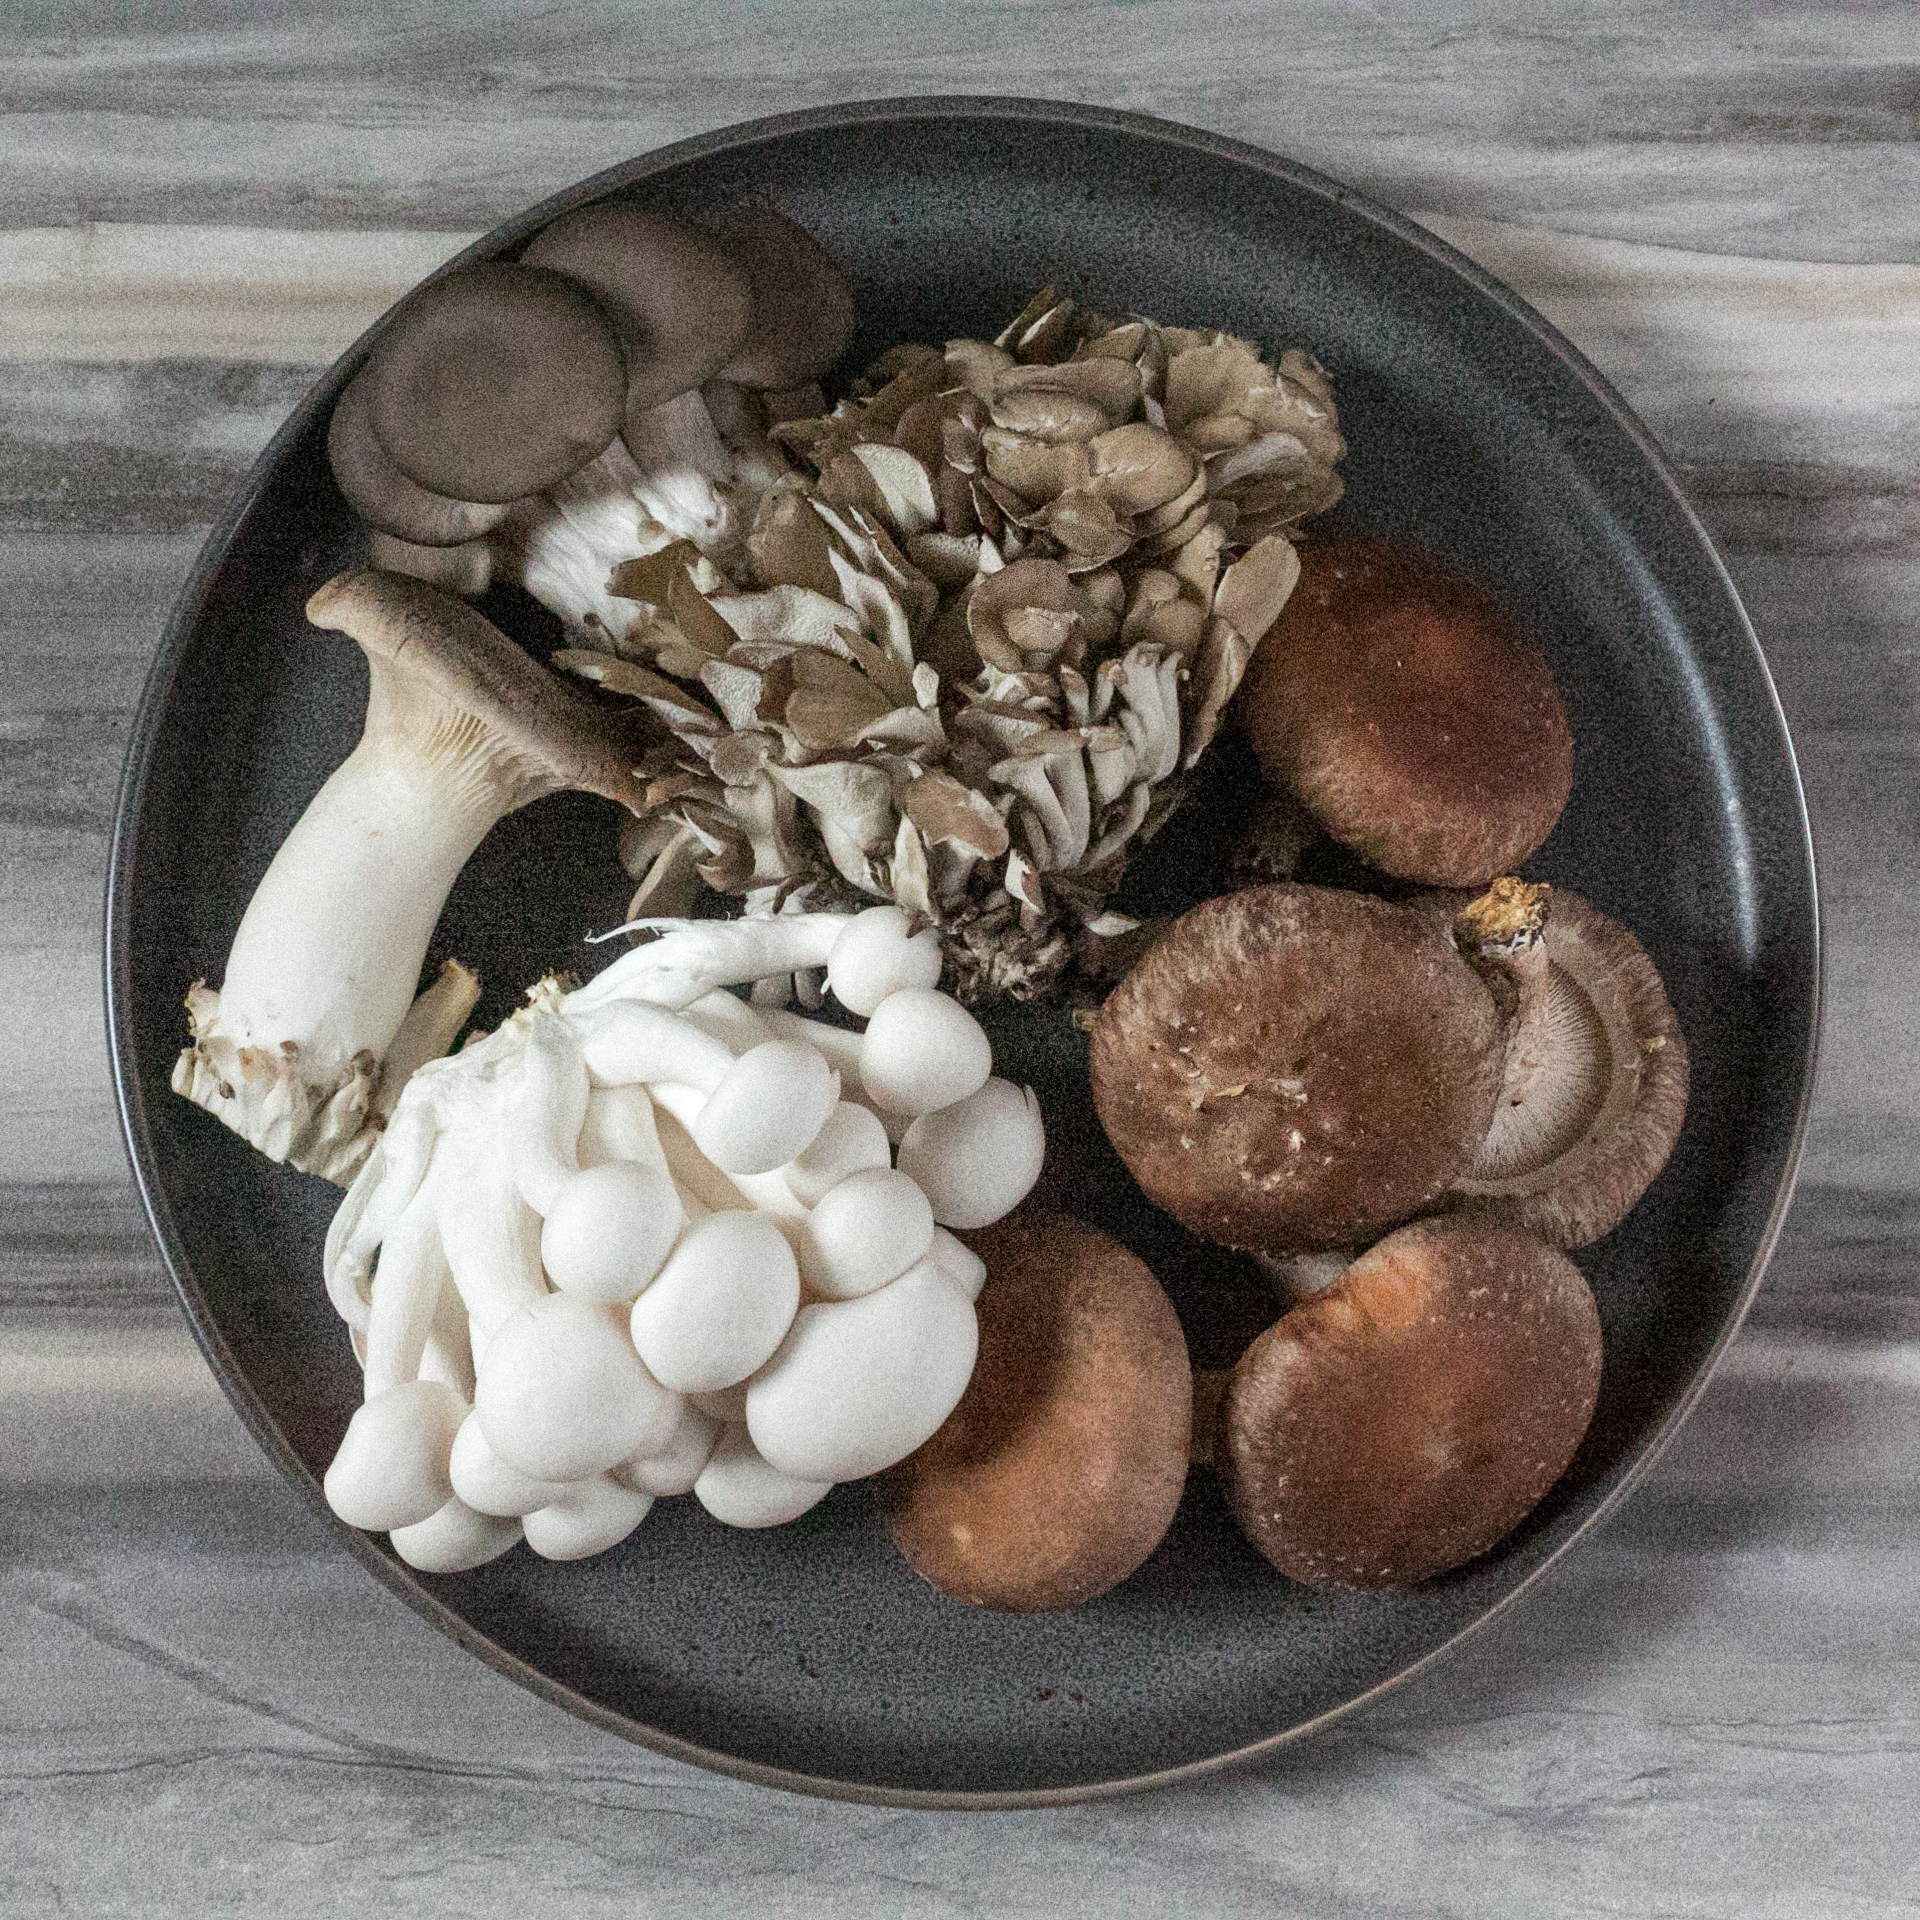 Assorted mushrooms in a bowl